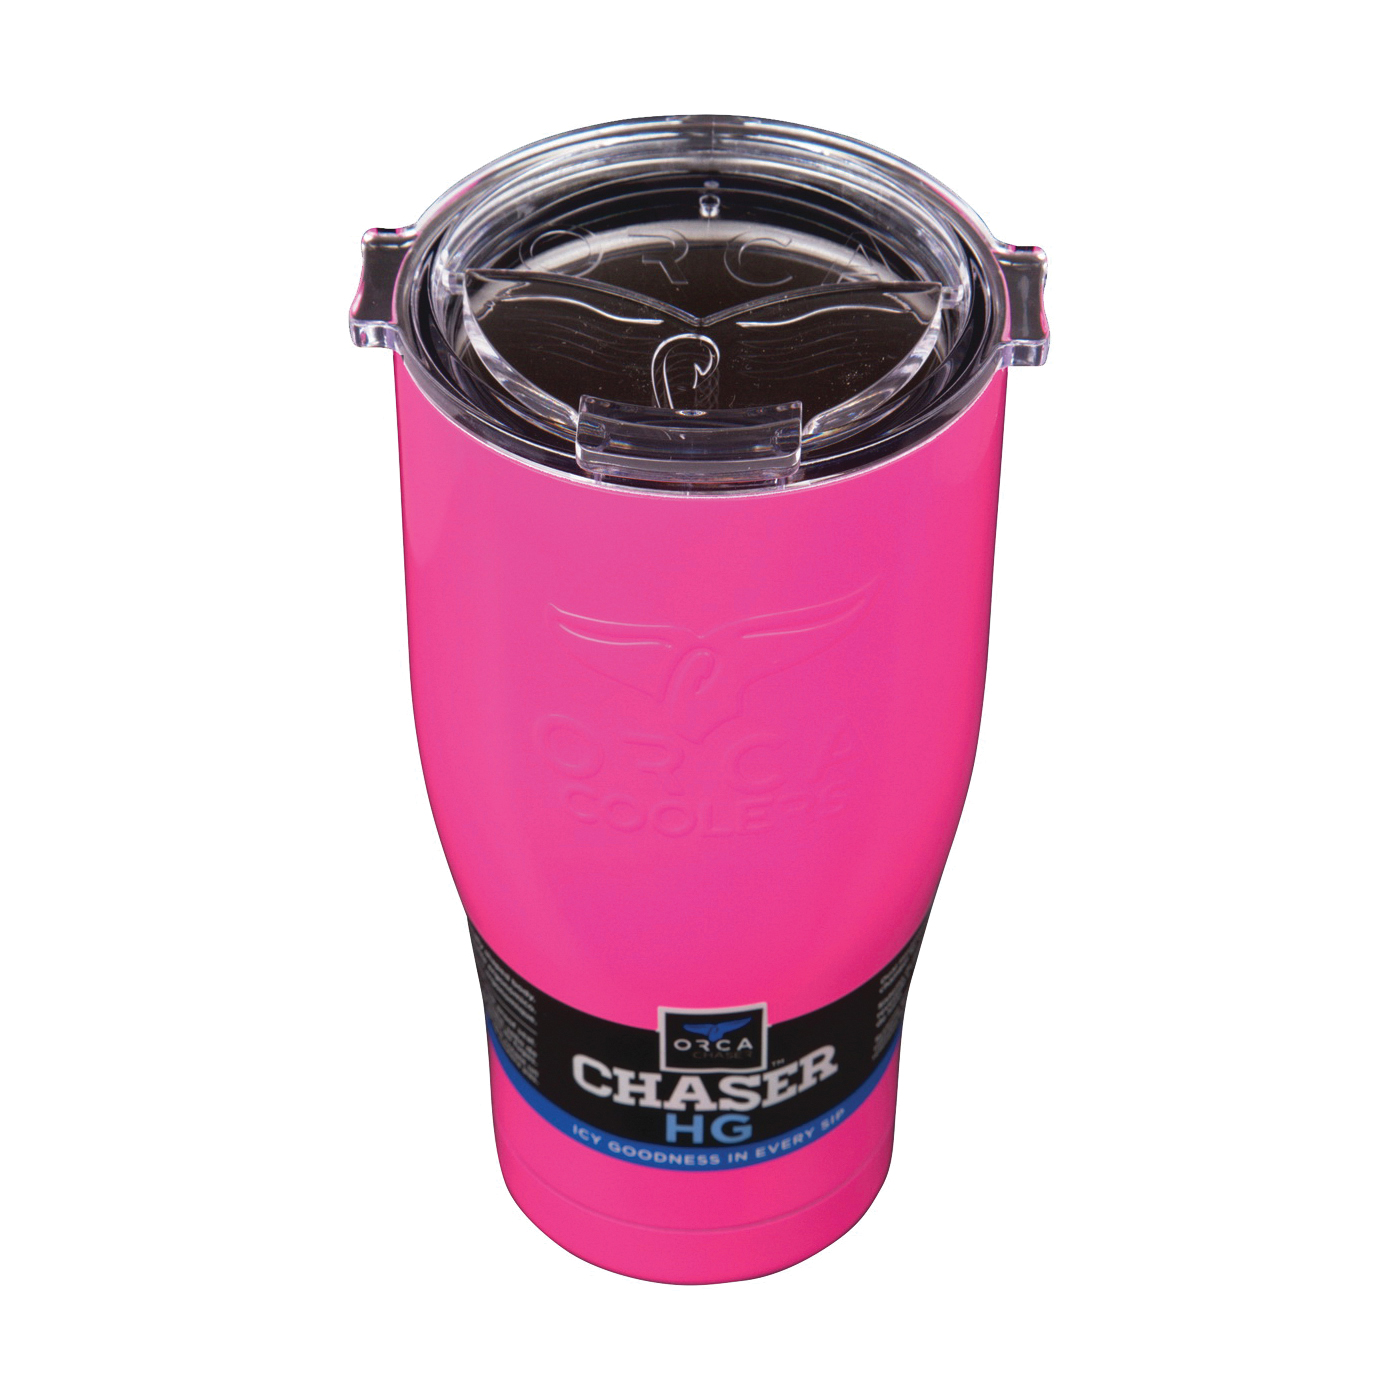 Picture of ORCA ORCCHA27PI/CL Chaser Tumbler, 27 oz Capacity, Stainless Steel, Pink